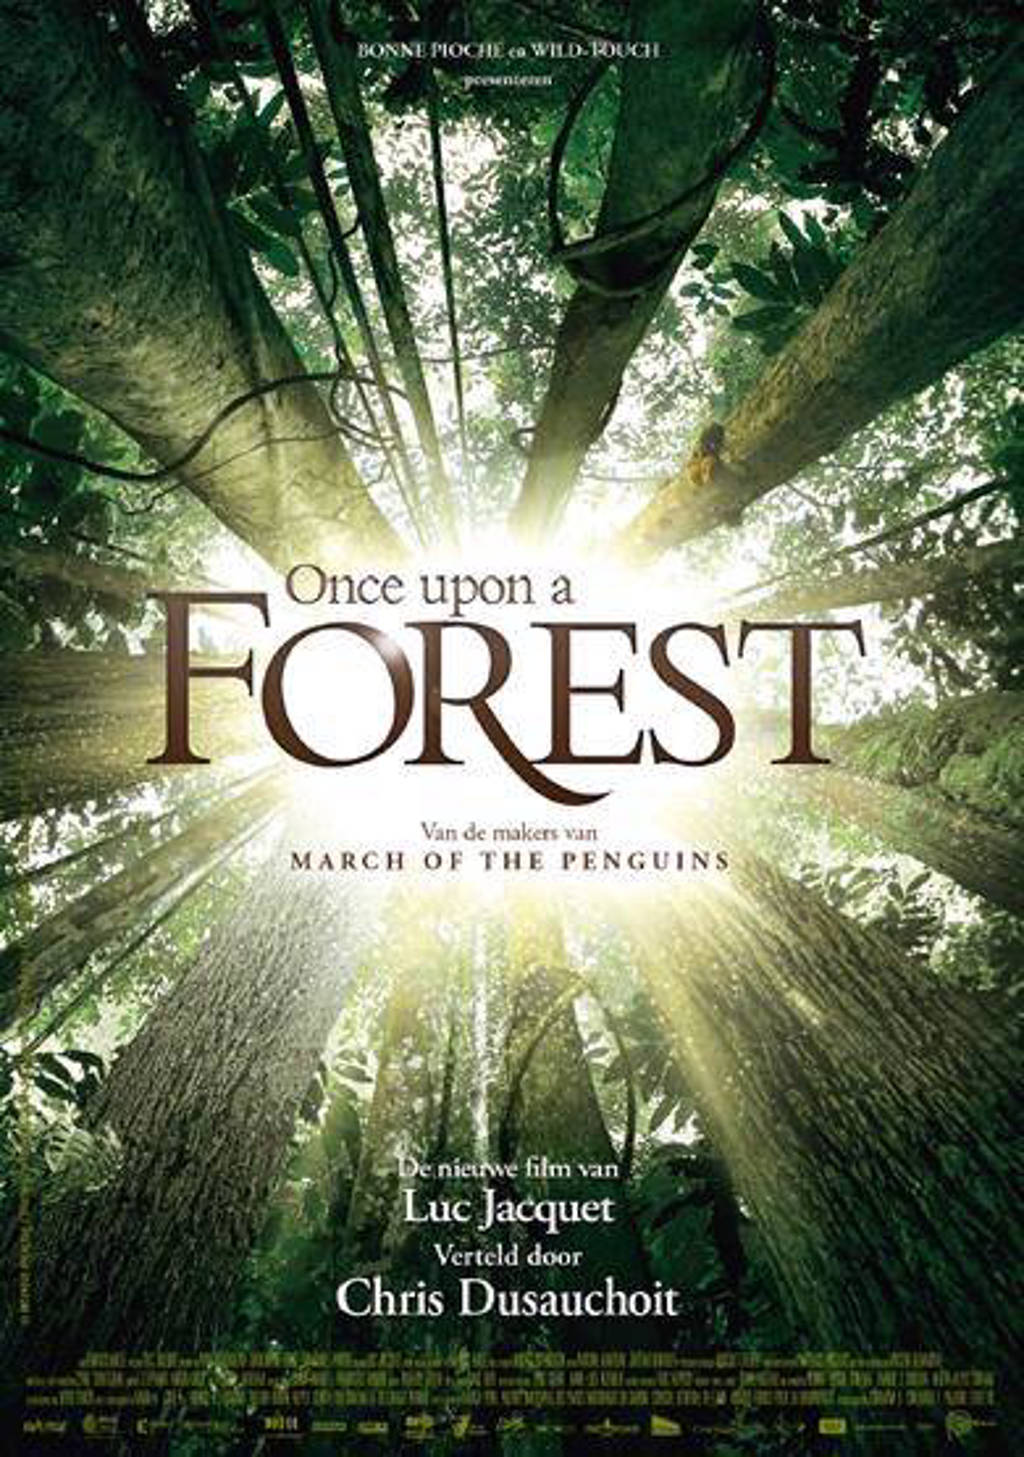 Once upon a forest (Vlaamse versie) (DVD)